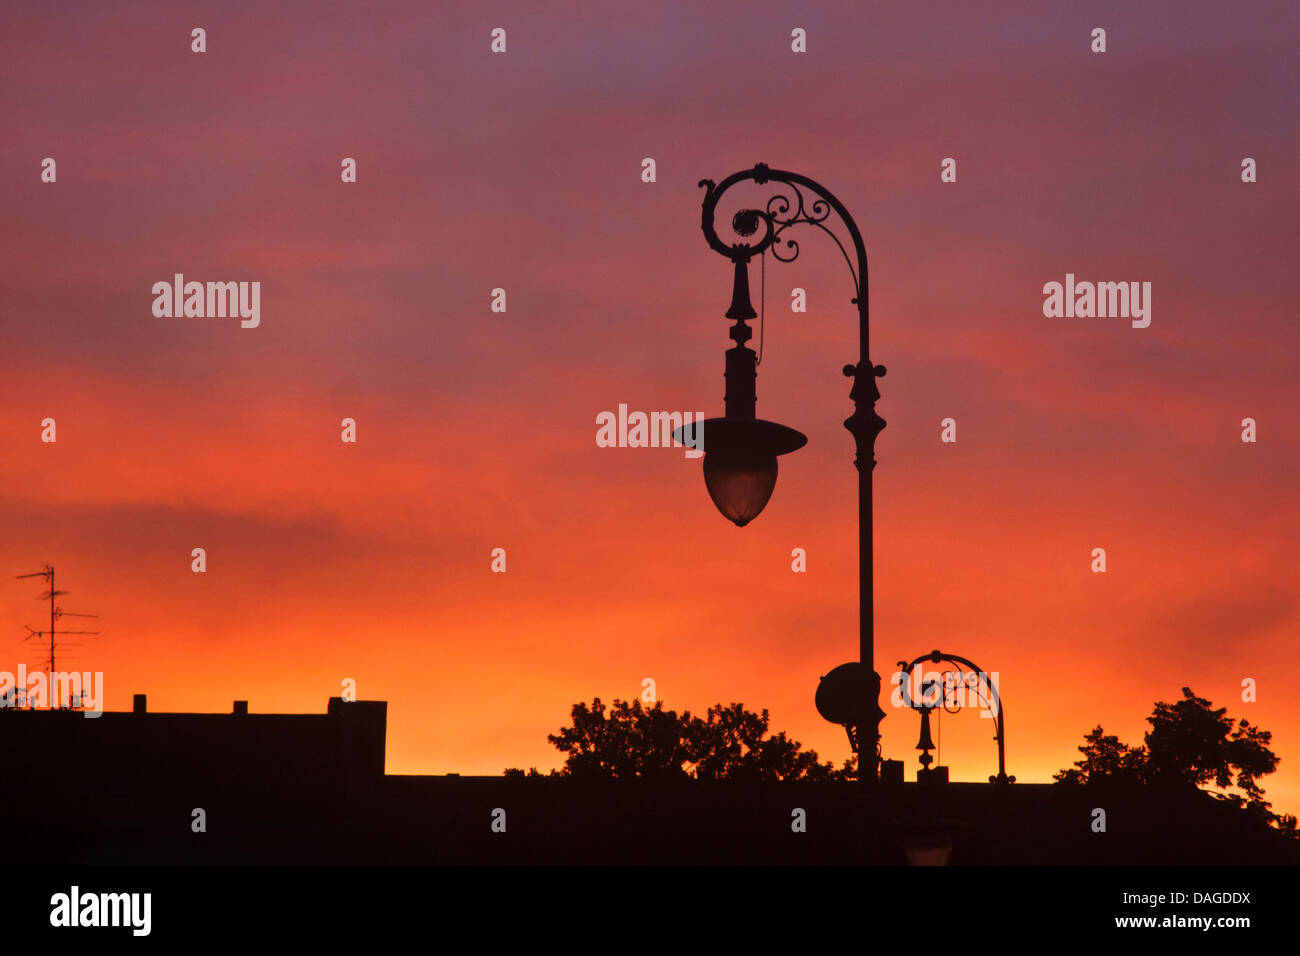 silhouette of an old street lamp at sunset, Germany, Berlin - Stock Image